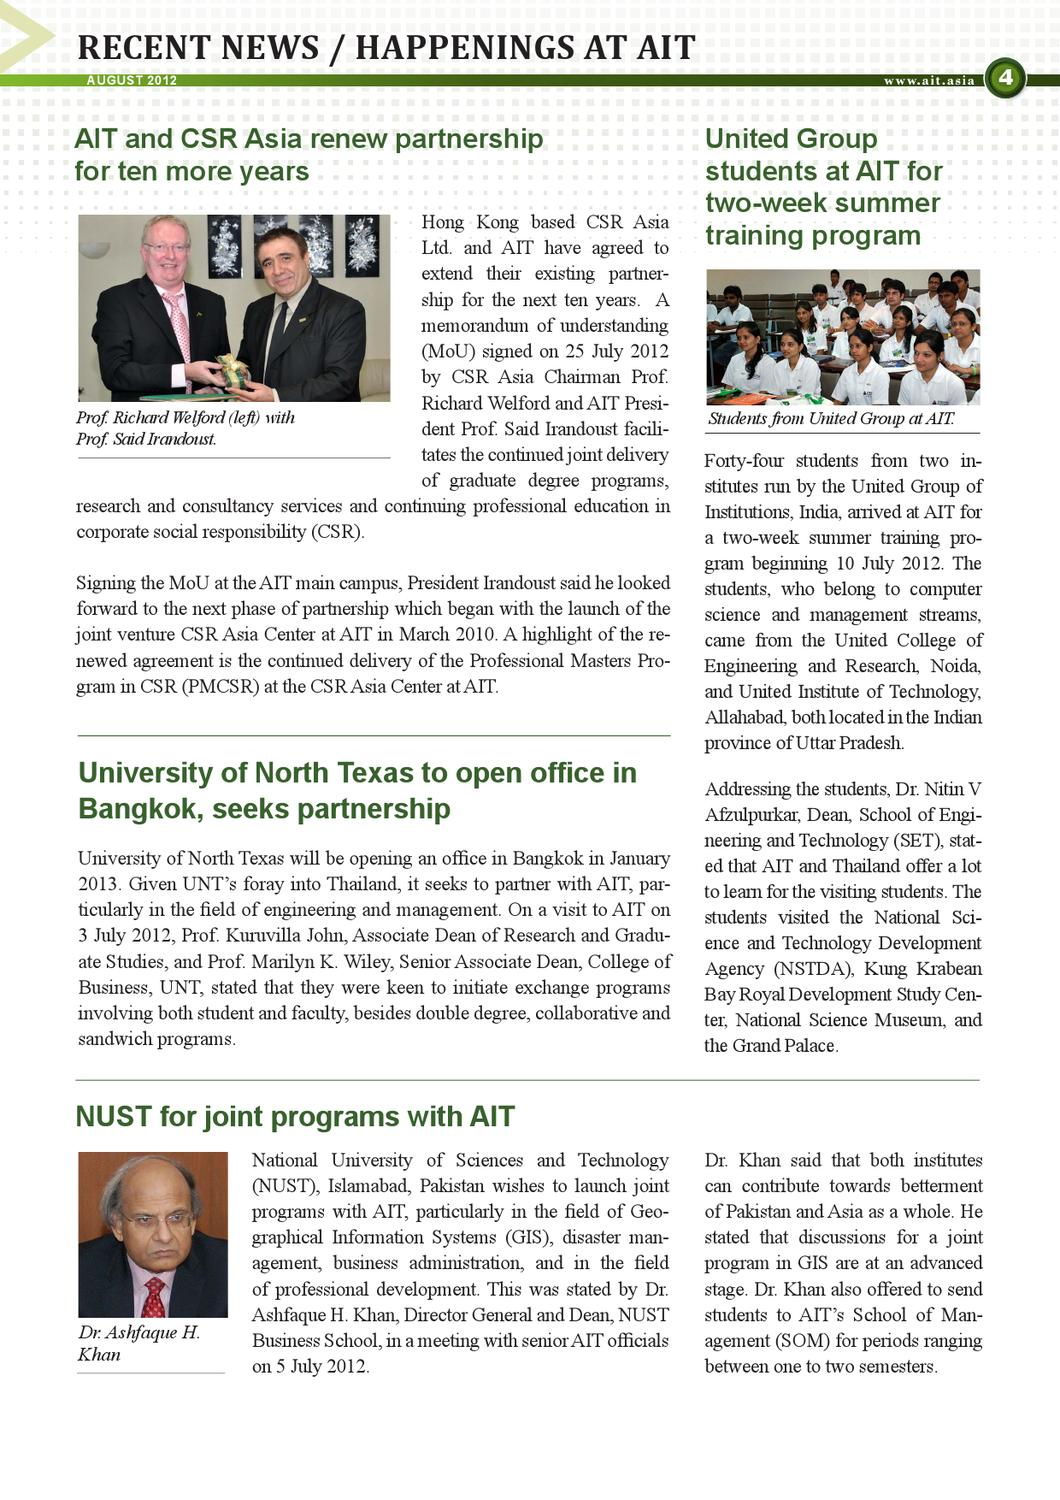 AIT Newsletter August 2012 by MCU AIT - issuu